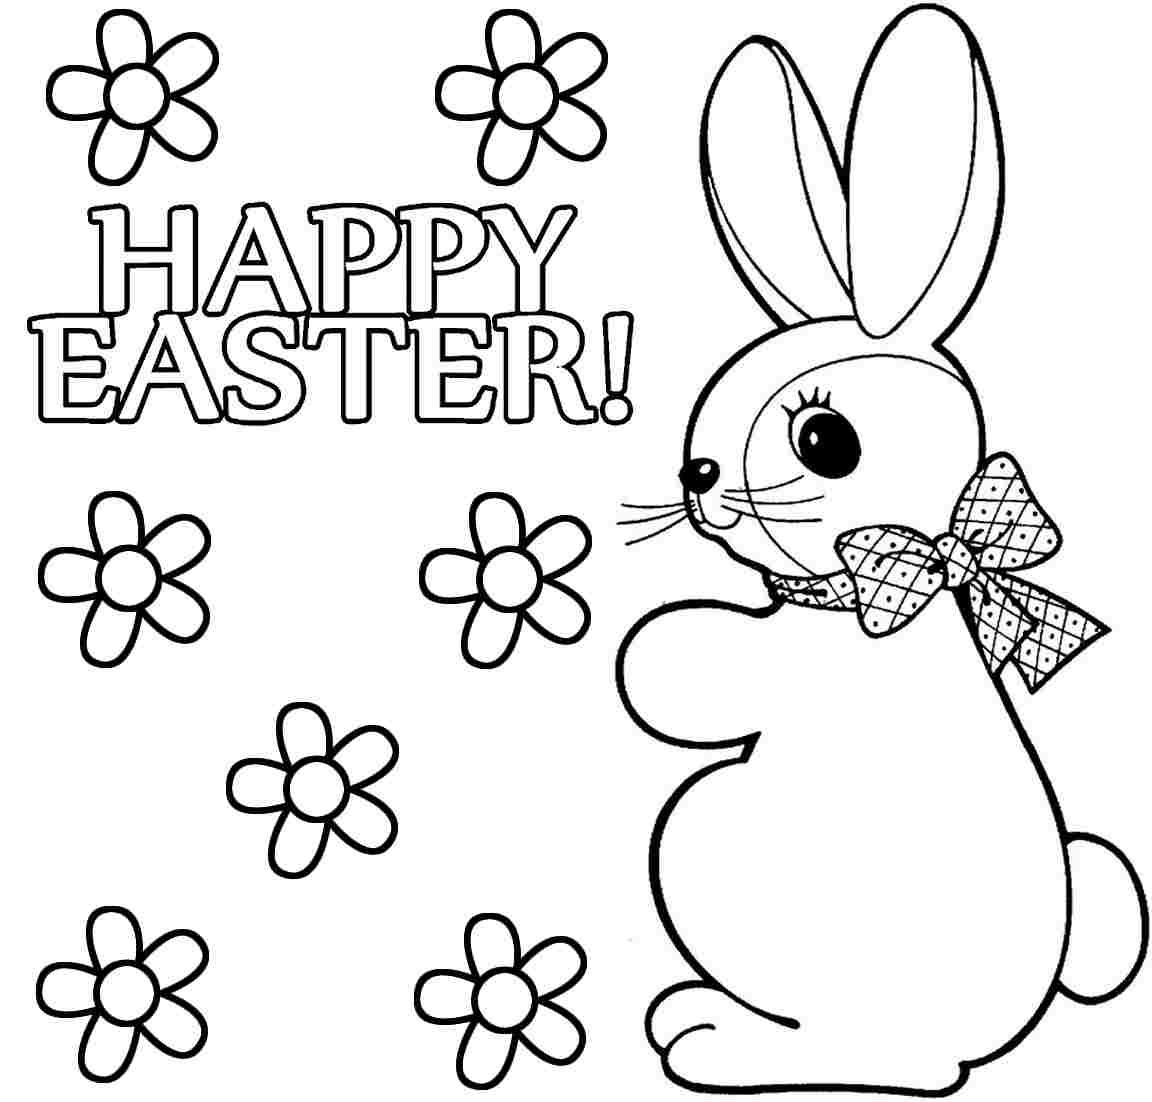 Free Printable Easter Coloring Pages For Preschoolers – Happy Easter - Free Printable Easter Drawings